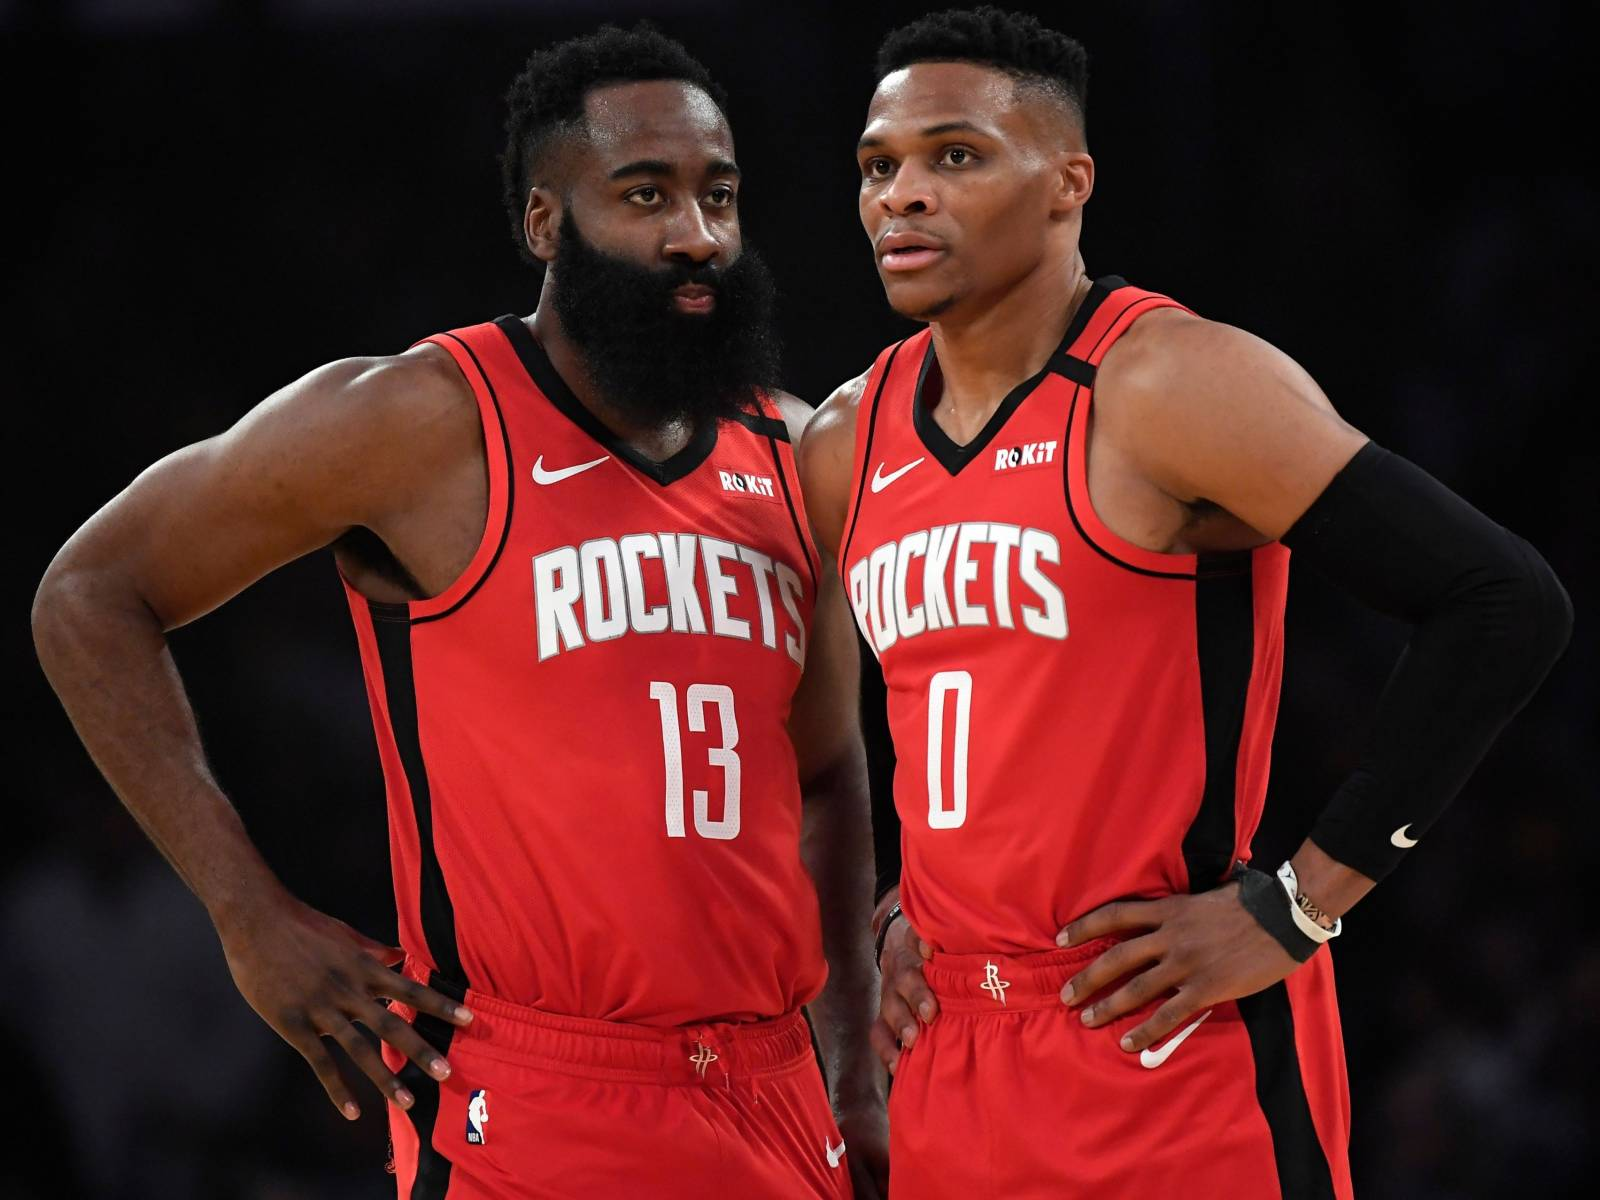 Russell Westbrook & James Harden Recreate Outkast's Iconic 'Stankonia' Photo Shoot For GQ